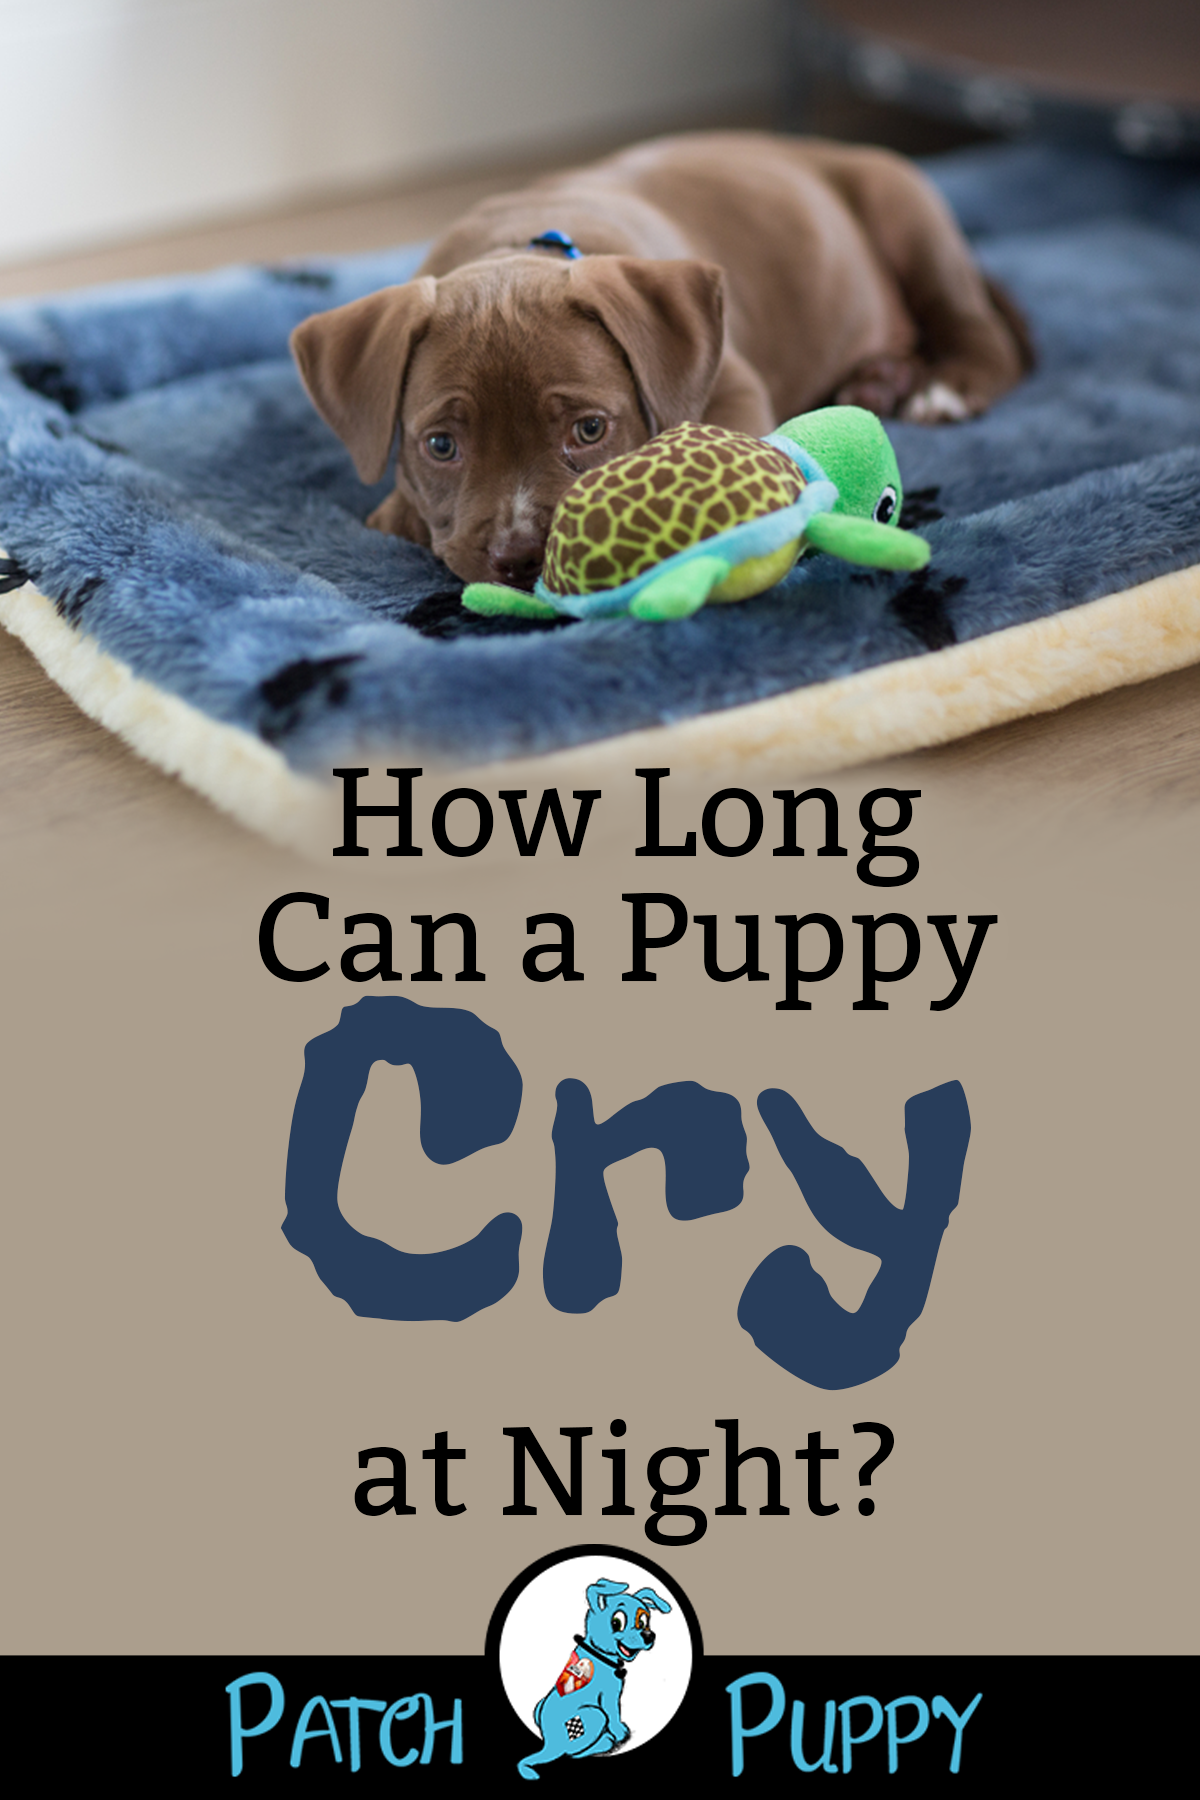 7 Simple Steps For Crate Training A Puppy The First Night Patchpuppy Com Crying Puppy At Night Puppy Training Schedule Crate Training Puppy